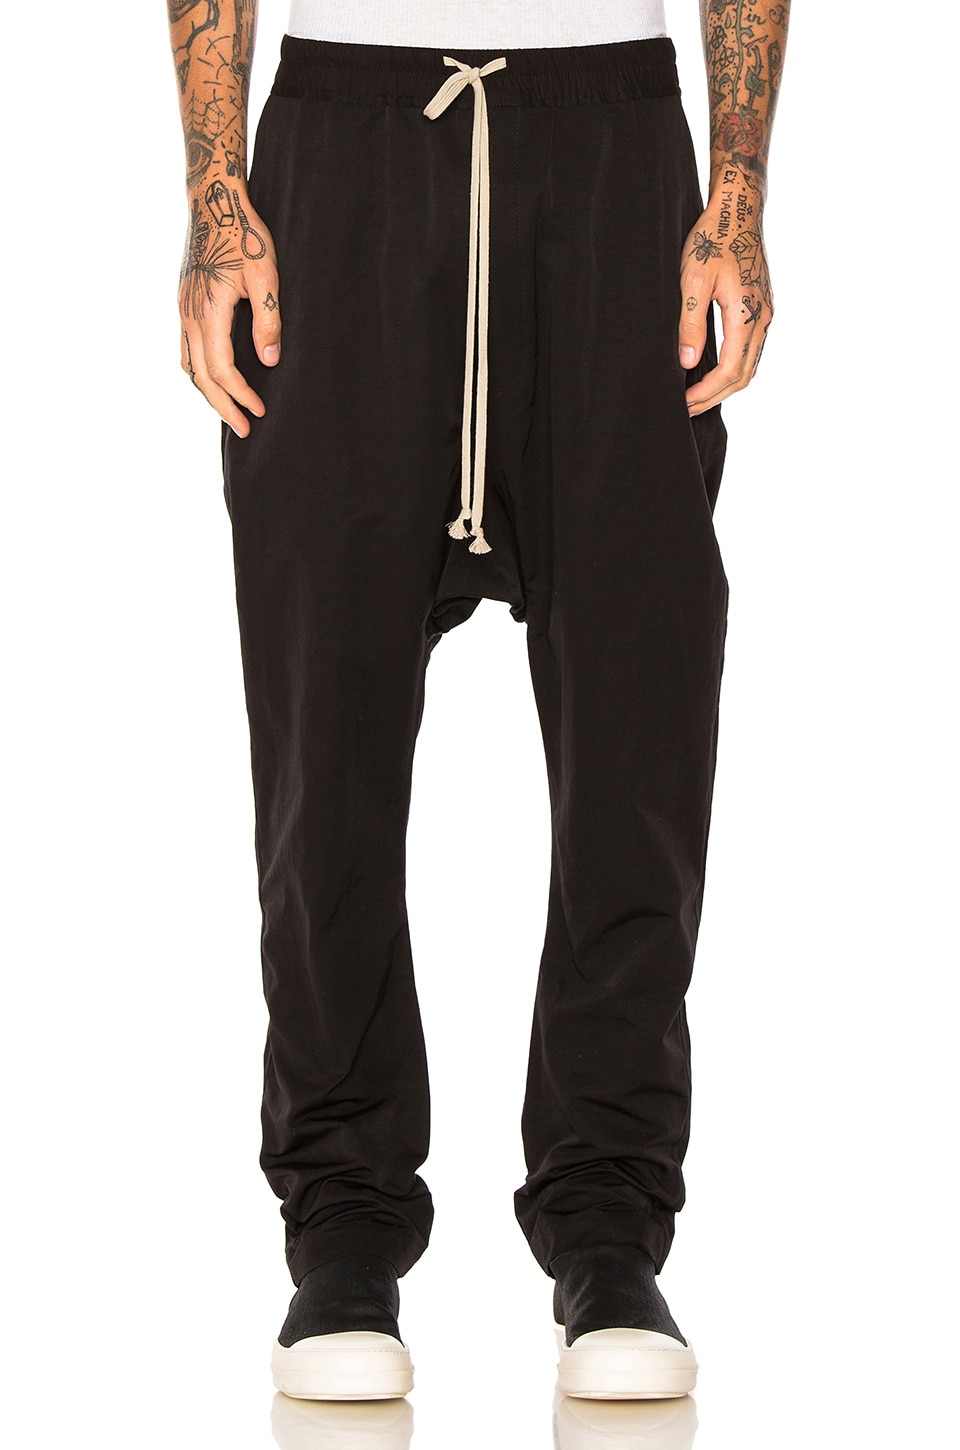 Long Pant by DRKSHDW by Rick Owens